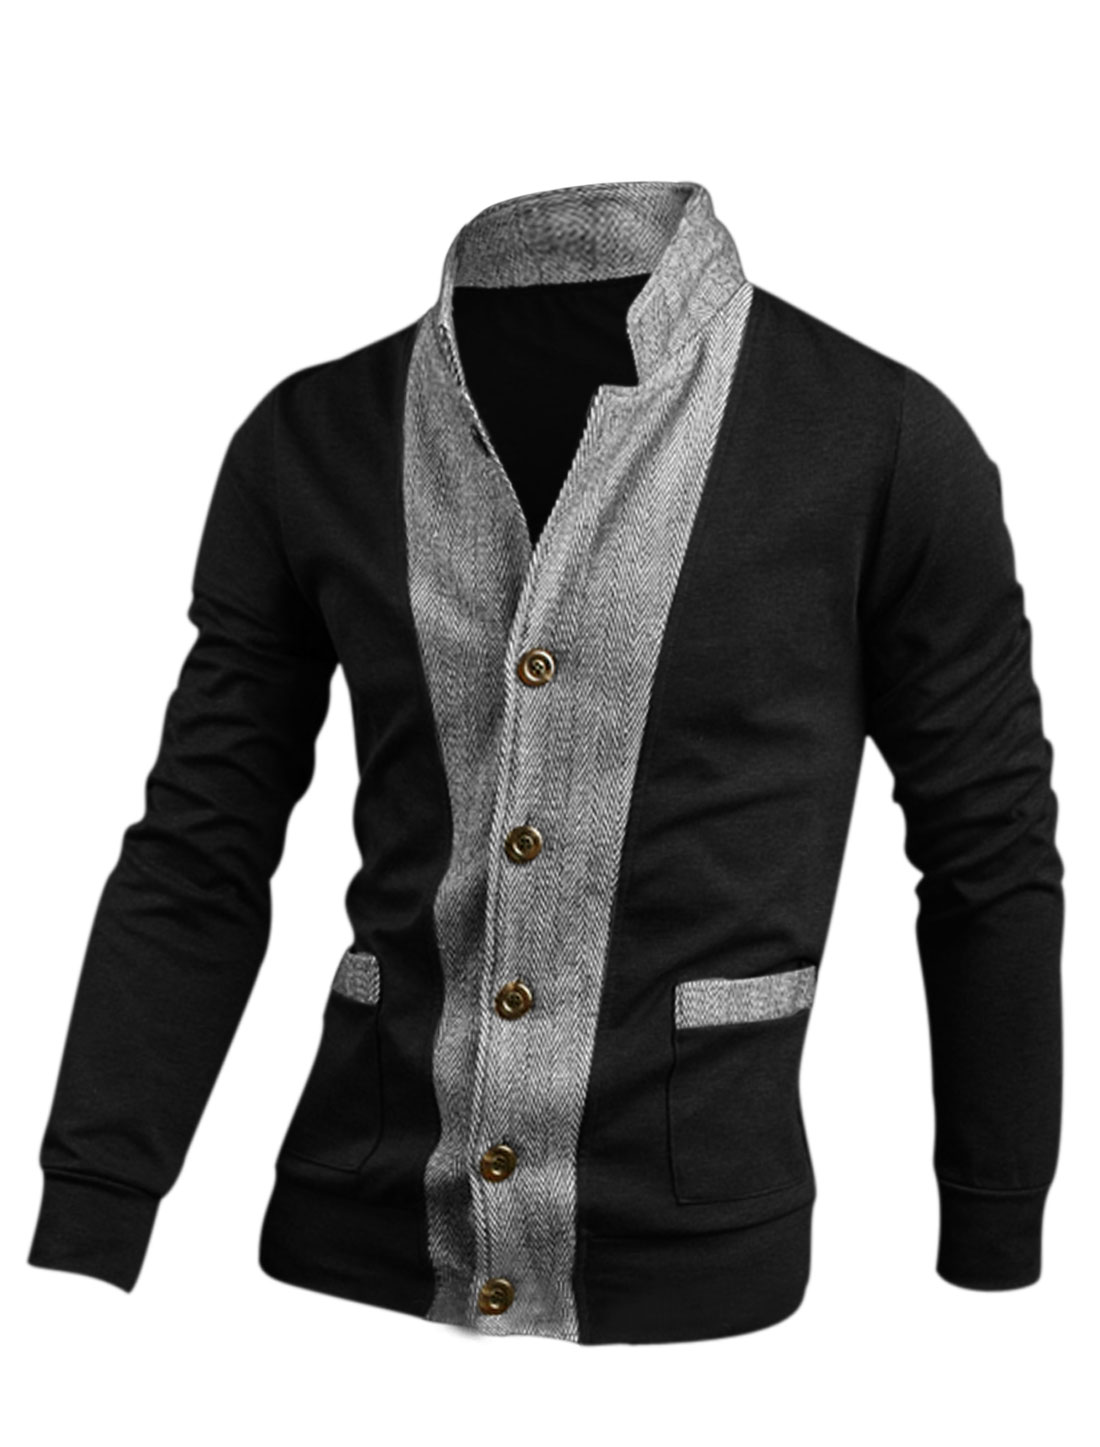 Men Black Single Breasted Front Pockets Ribbed Cuffs Jacket M